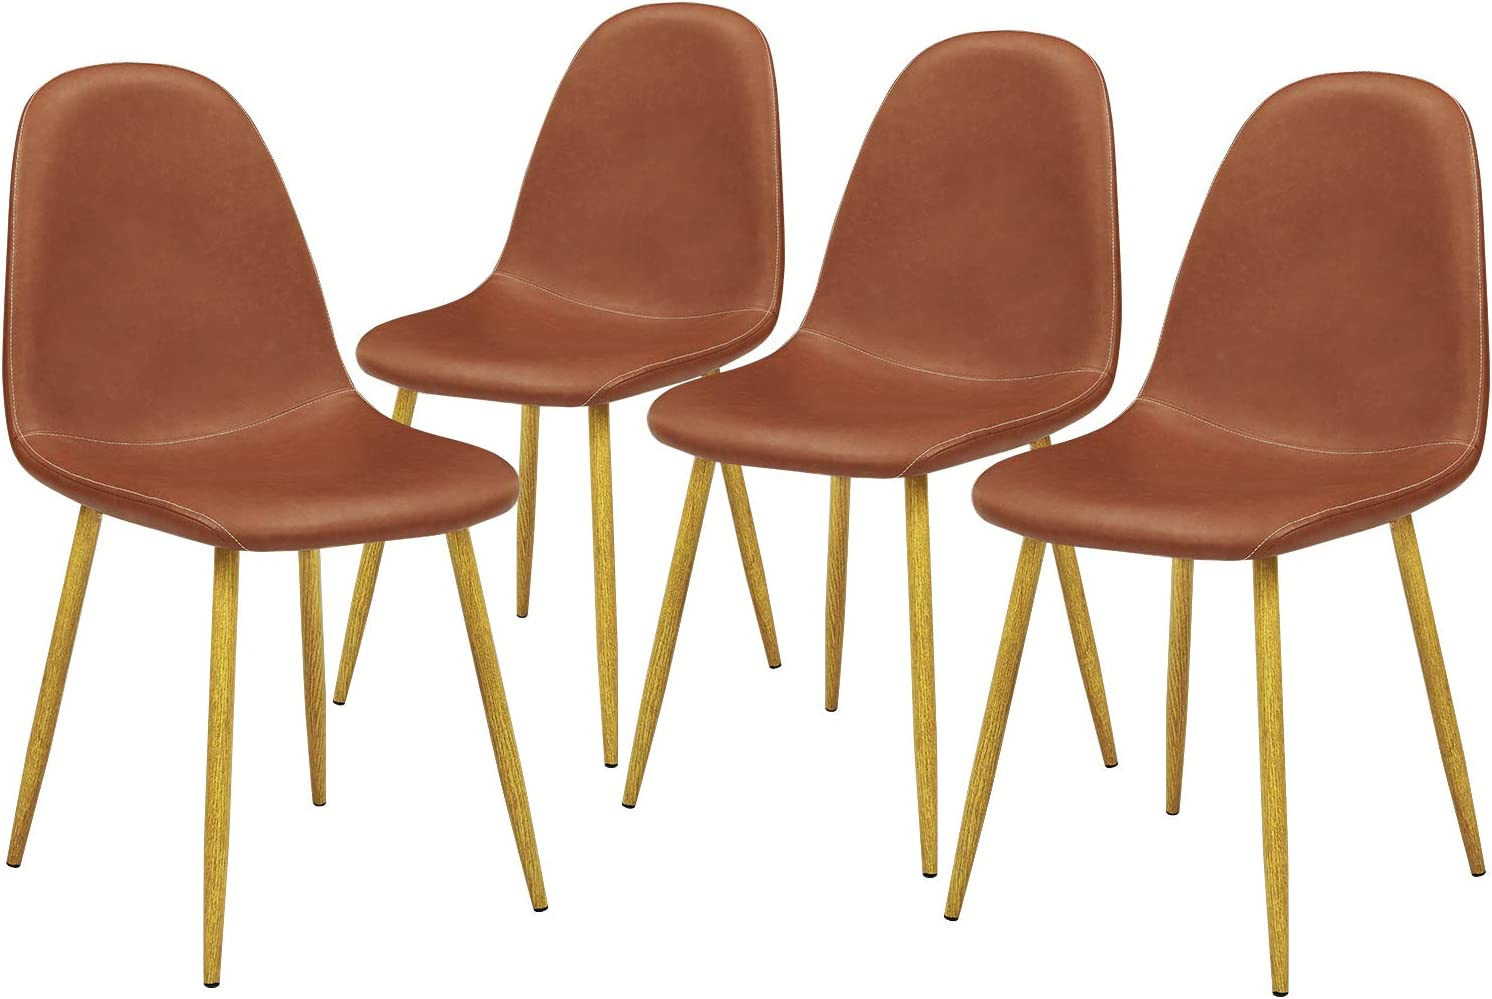 GreenForest Dining Chairs Set of 4, Washable Pu Cushion Seat Chair with Metal Legs for Kitchen Dining Room, Brown - Chairs